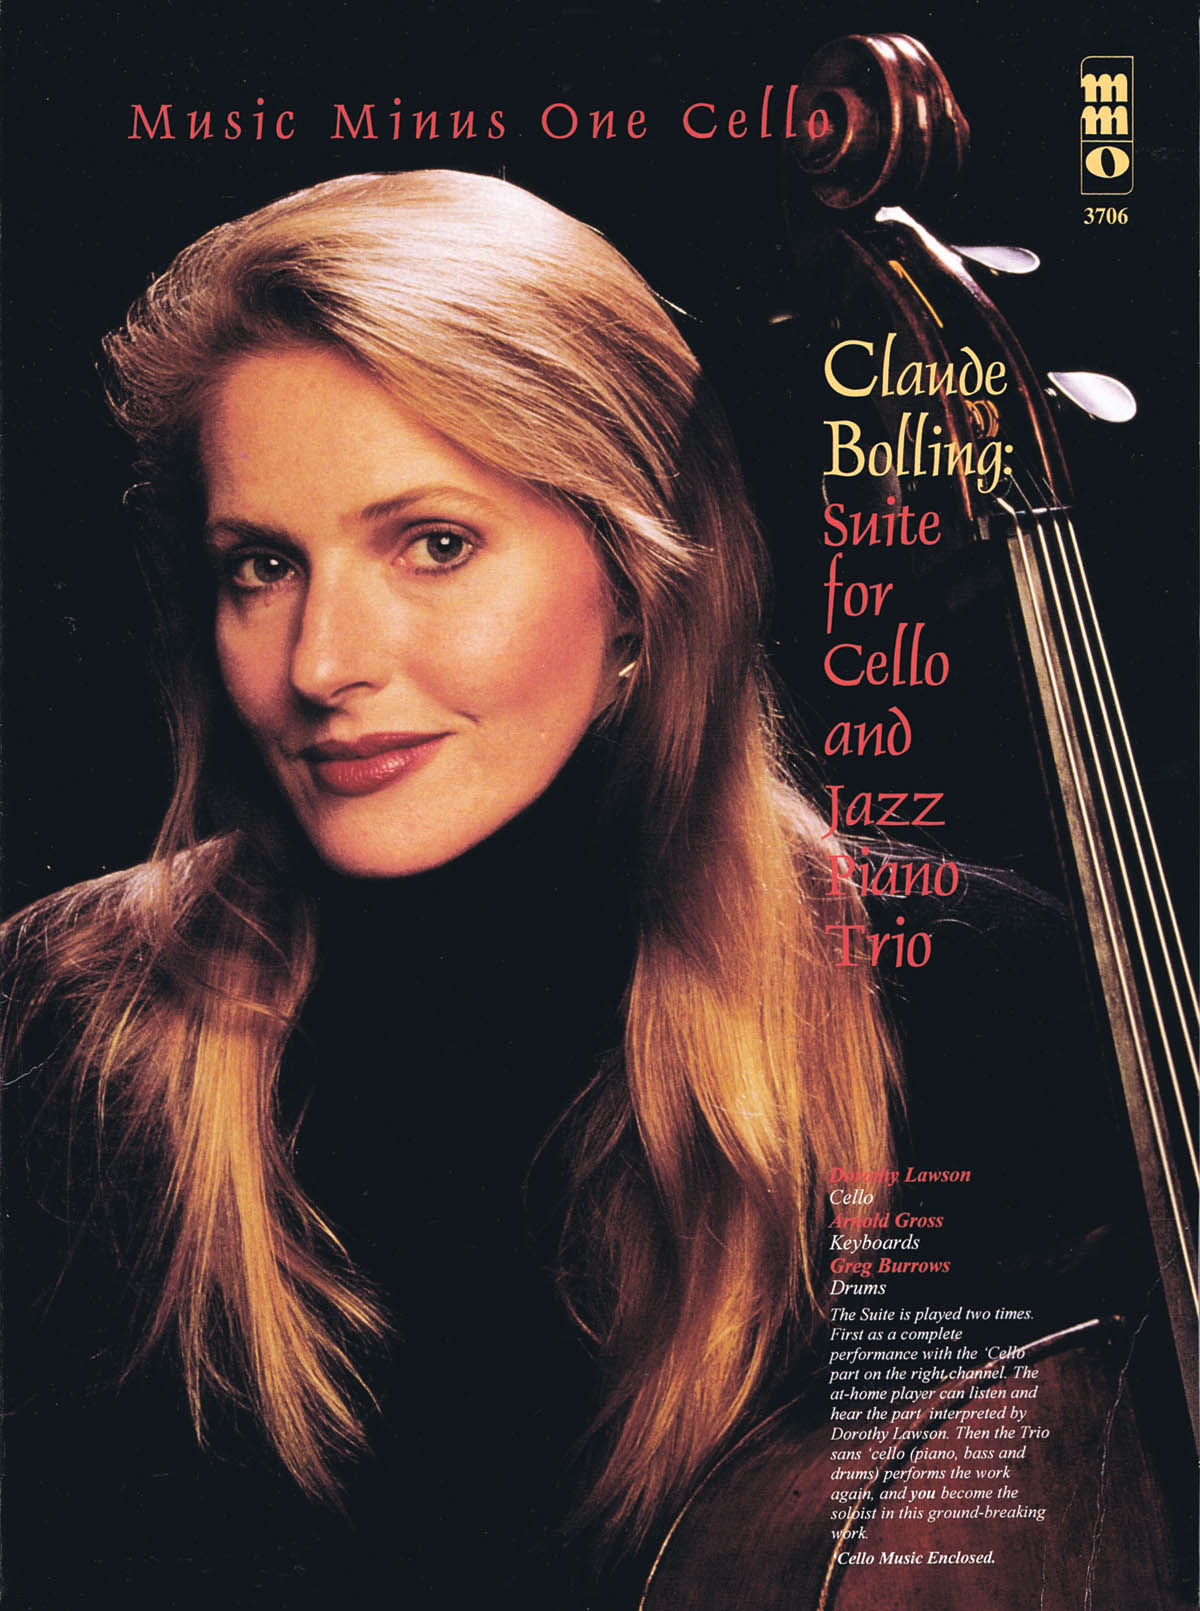 Claude Bolling: Suite for Violoncello and Jazz Piano Trio: Chamber Ensemble: